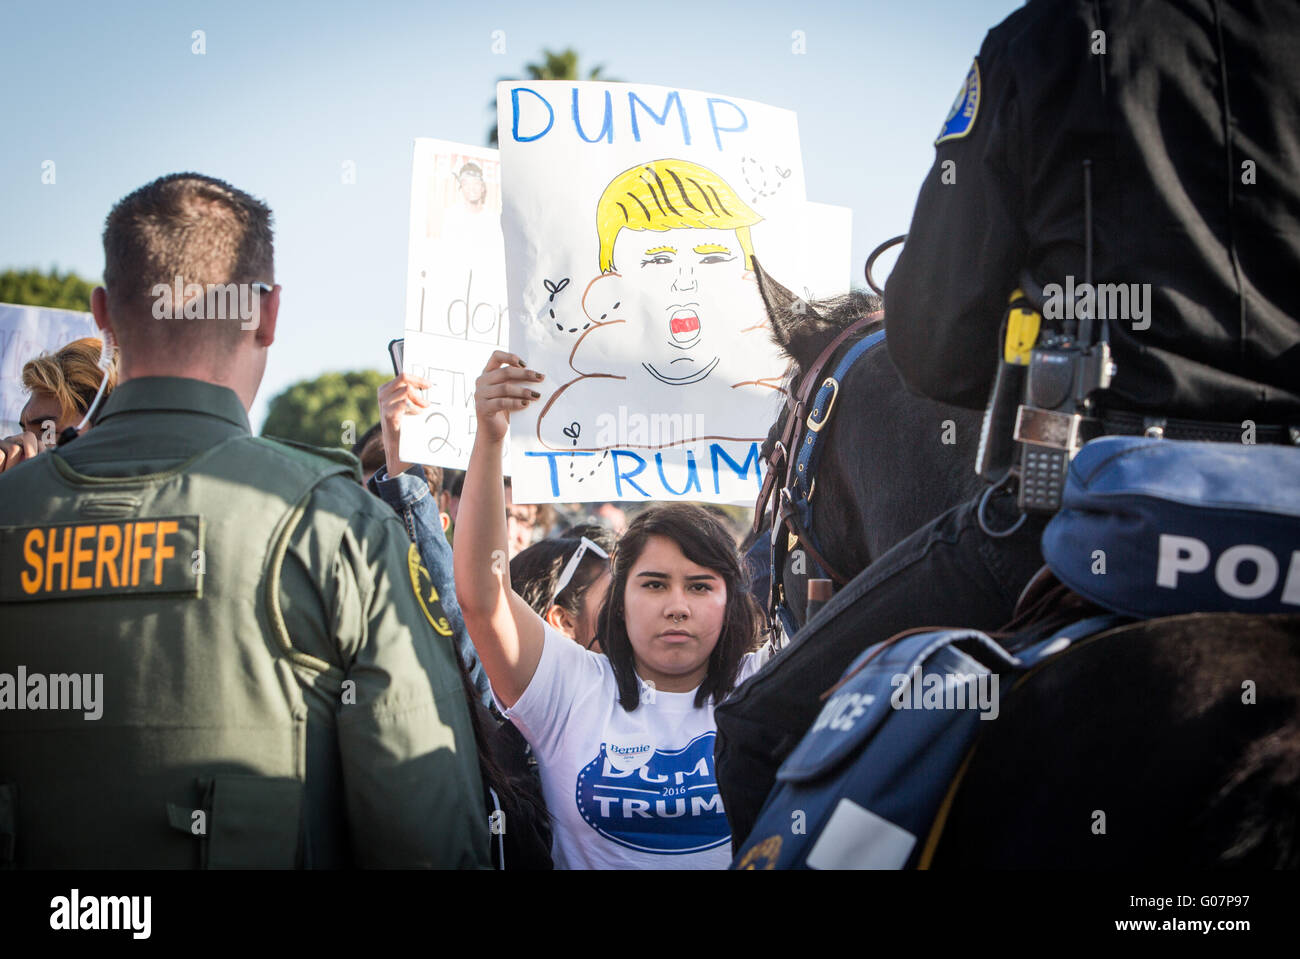 Anti-Donald Trump Demonstranten auf einer Trumpf-Kampagne-Kundgebung in Kalifornien. Stockbild